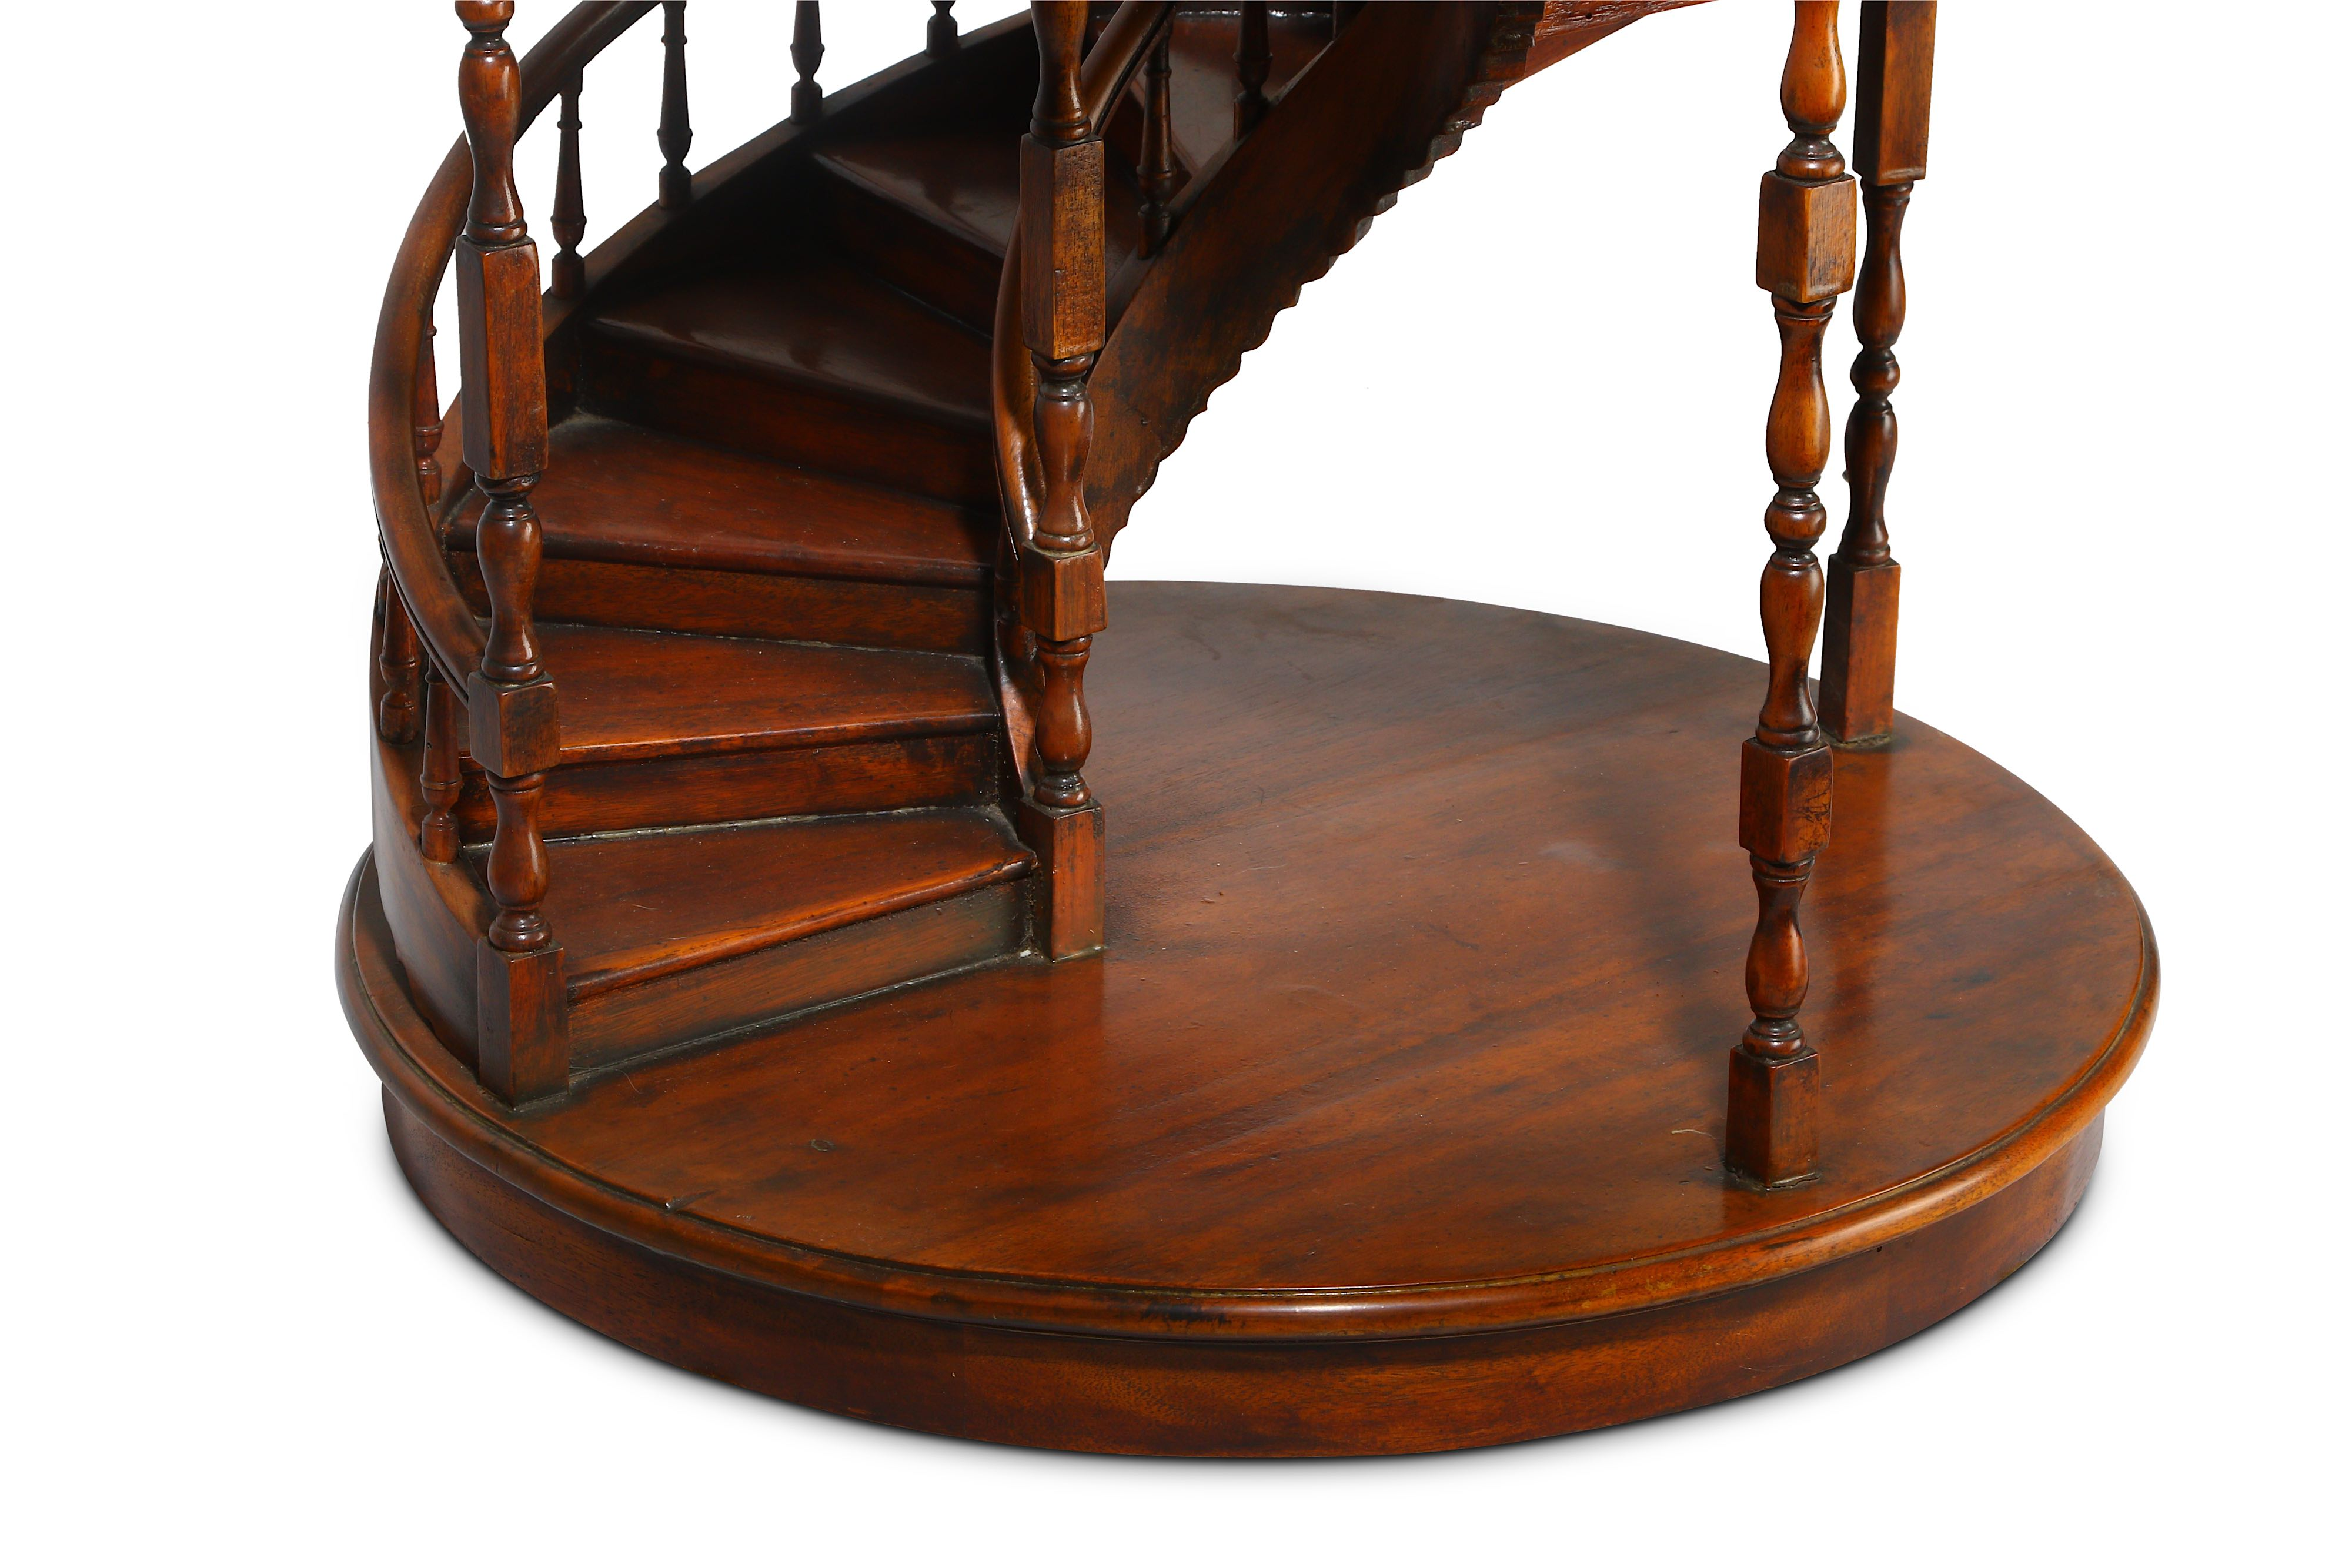 A LARGE EARLY 20TH CENTURY MAHOGANY APPRENTICE'S ARCHITECTURAL MODEL OF A SPIRAL STAIRCASE - Image 5 of 9